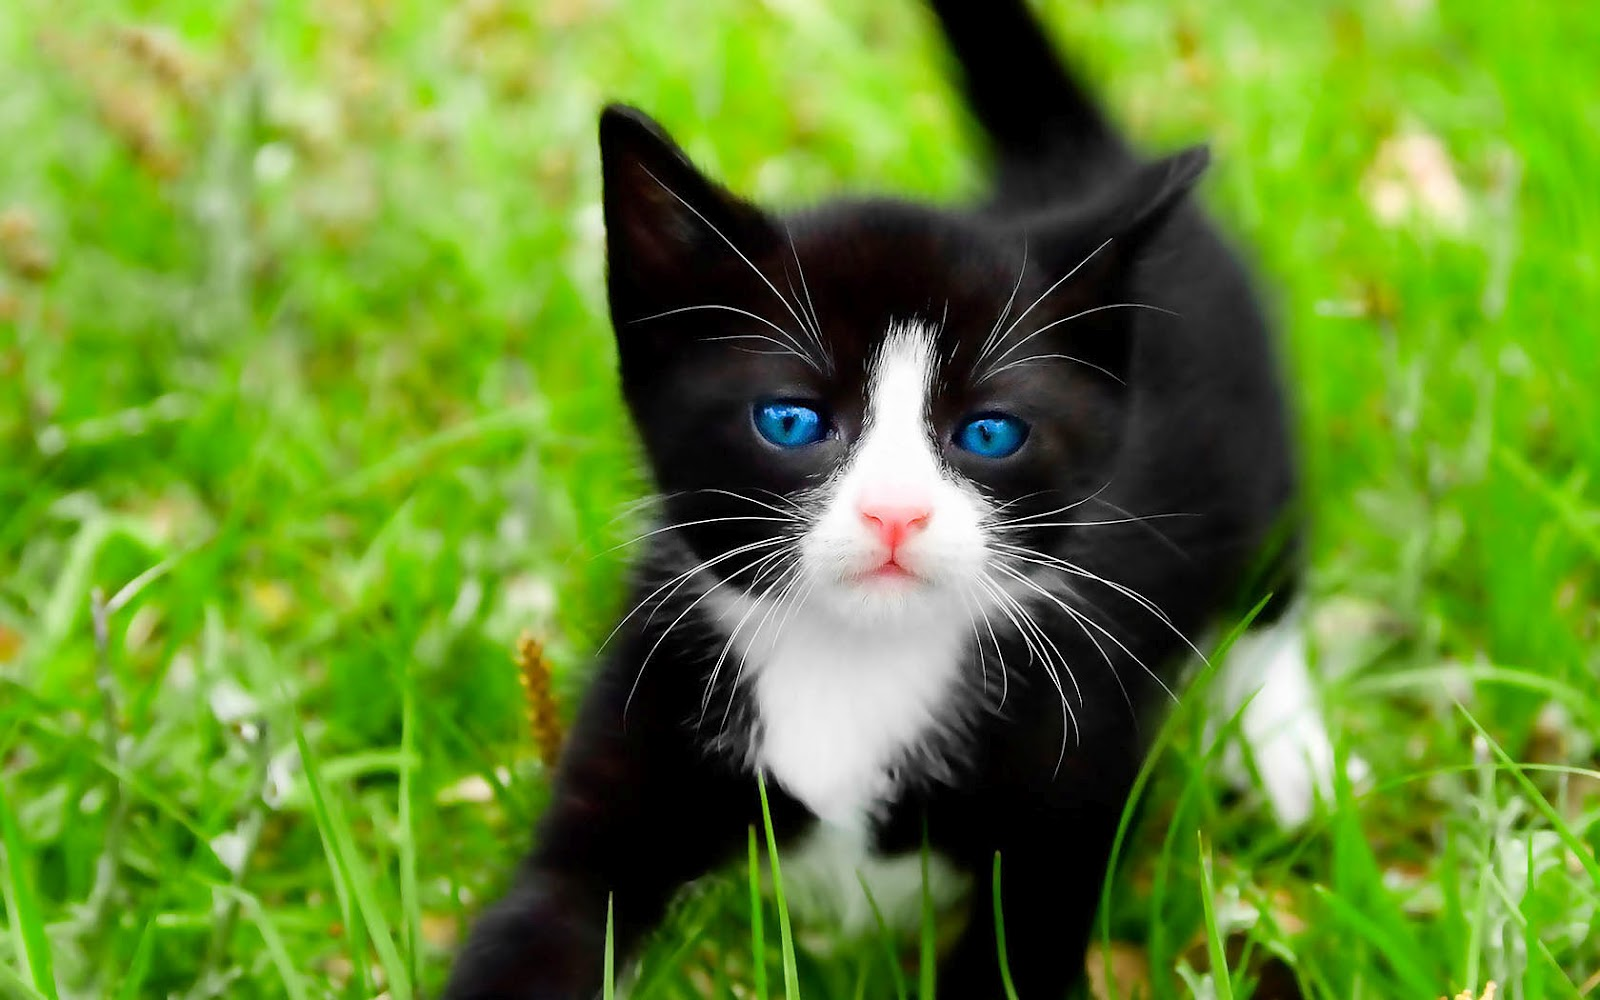 hdcatwallpaperwithablackcatonthegrasshdcatswallpapers